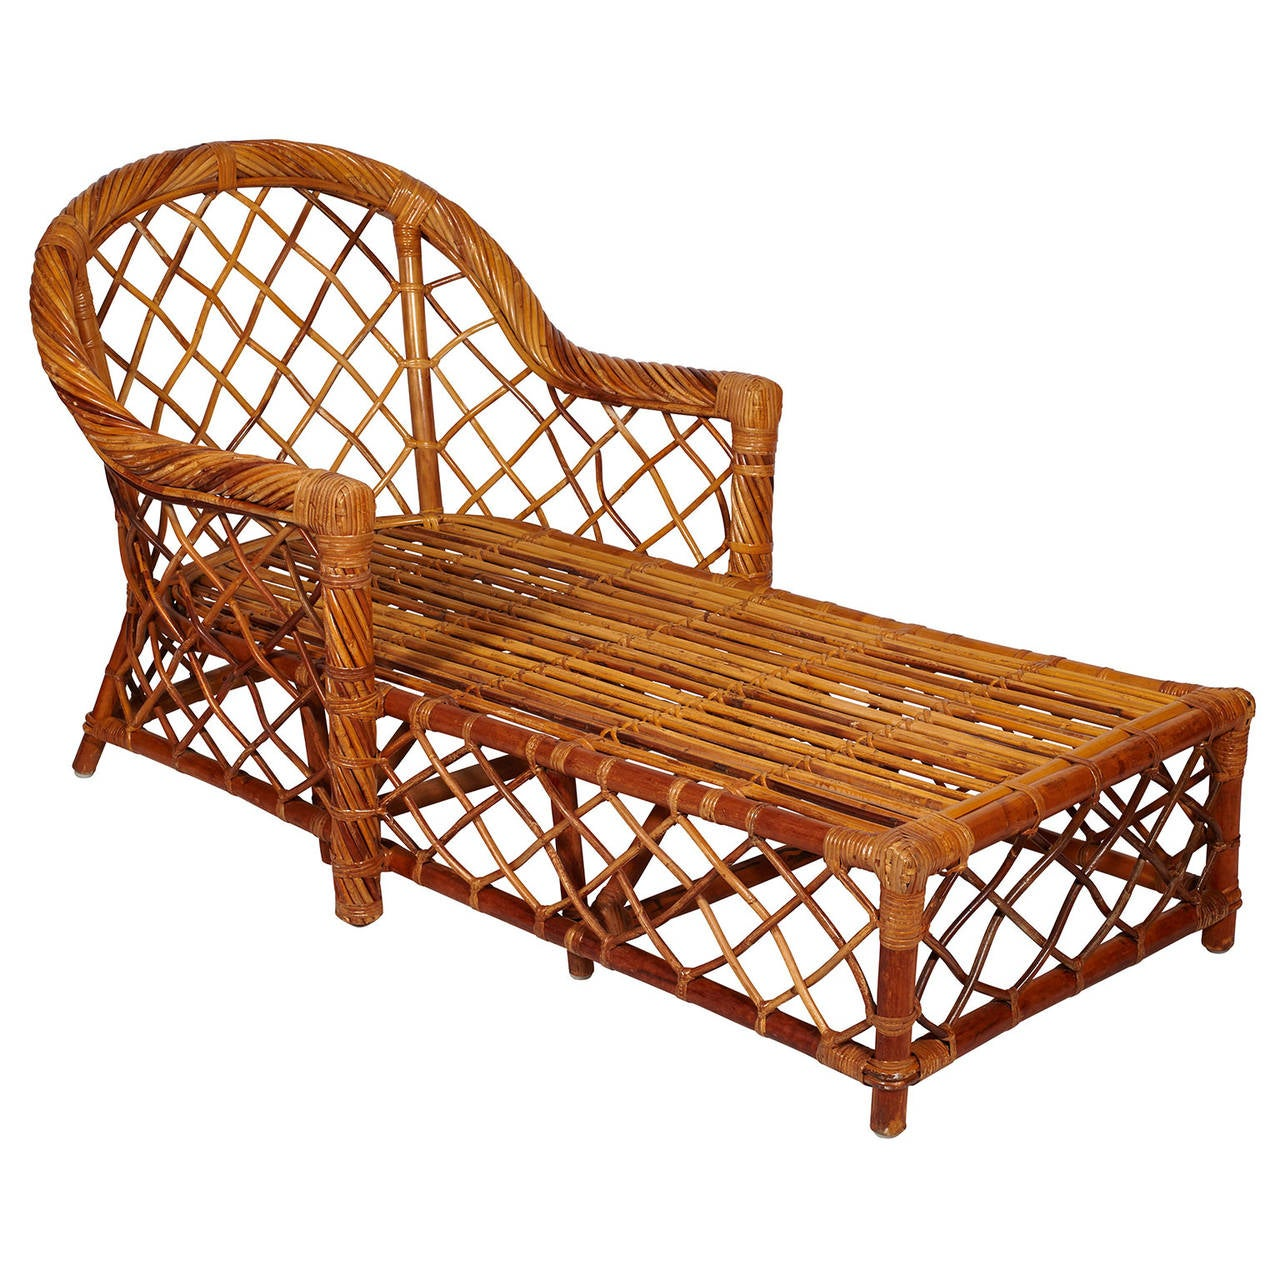 Bielecky bros rattan chaise lounge image 4 for Bamboo chaise lounge